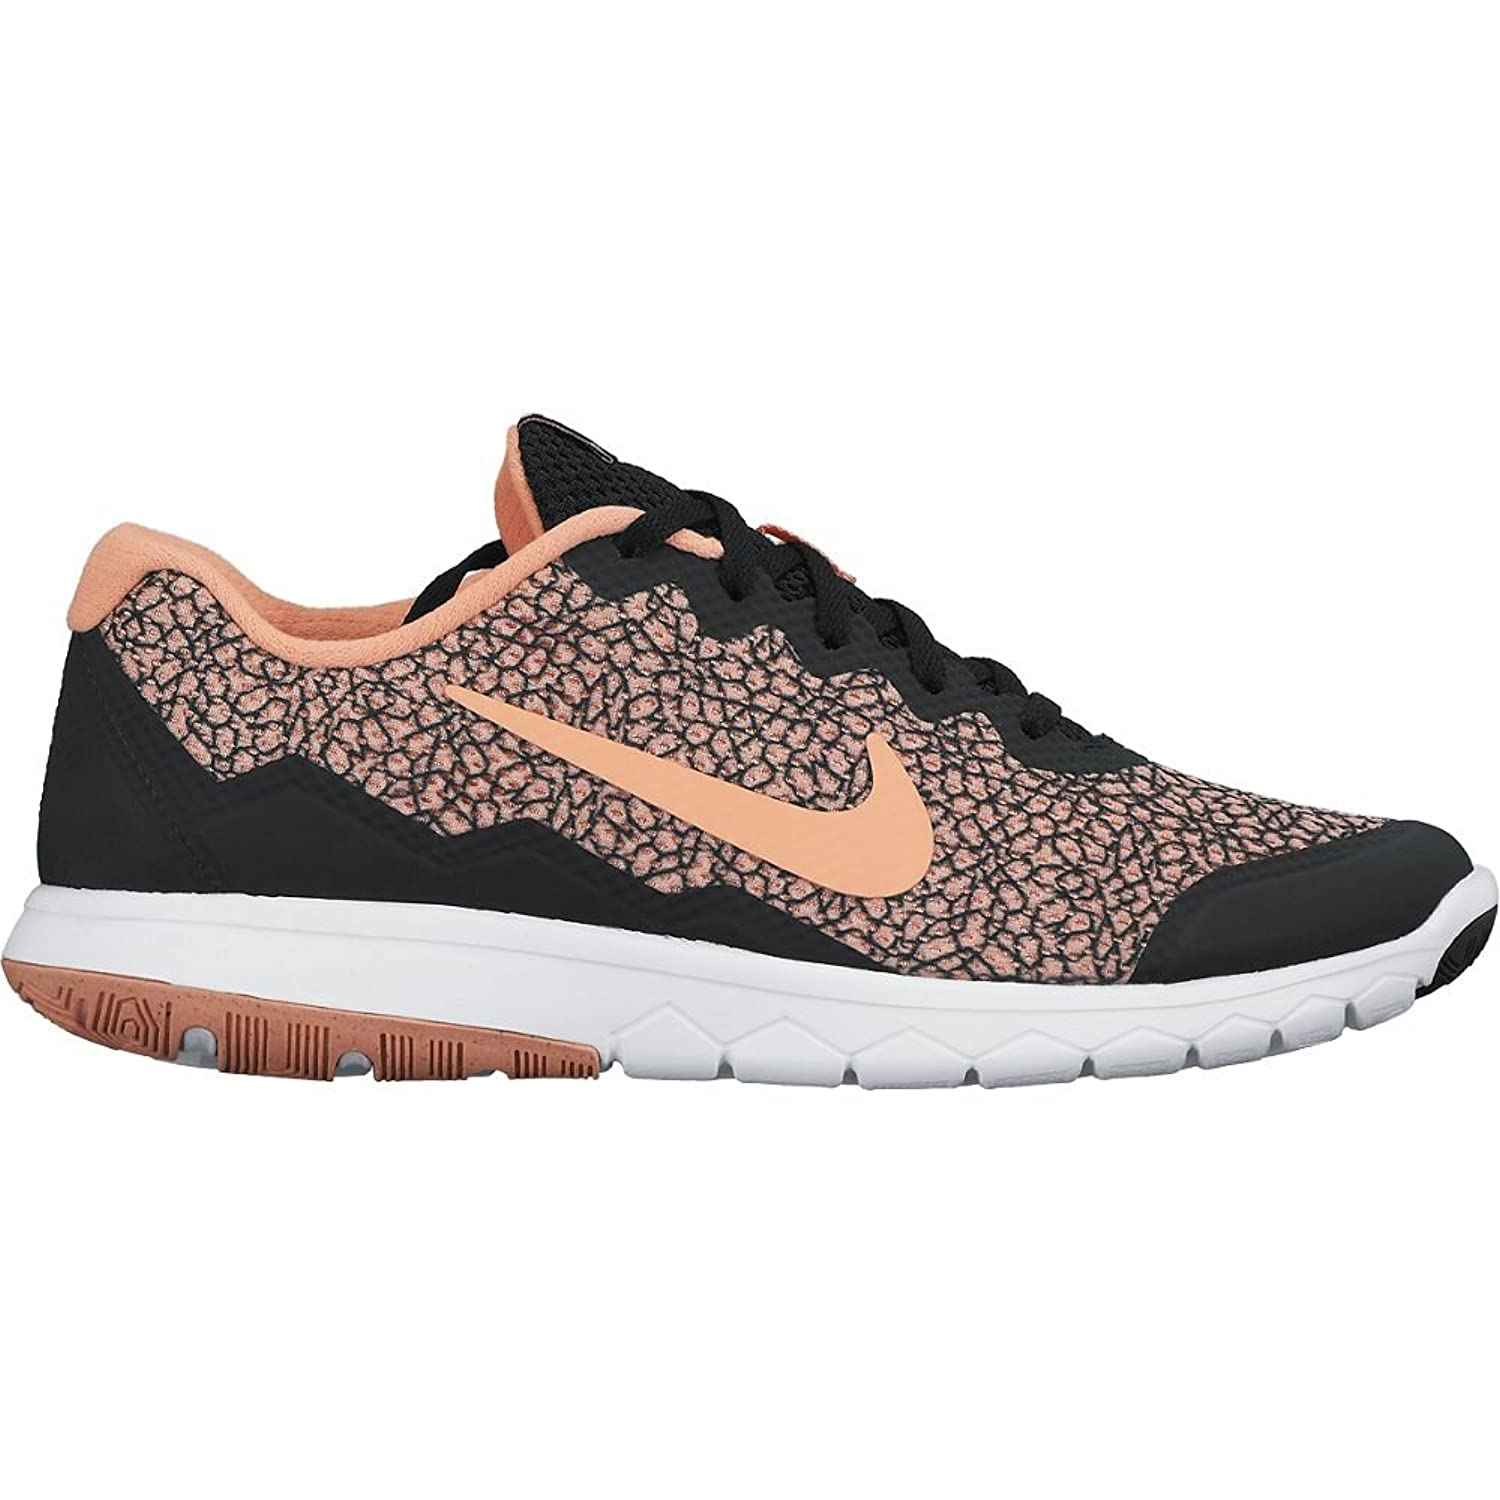 Nike Flex Experience Run 4 Premium Womens Running Shoes Black